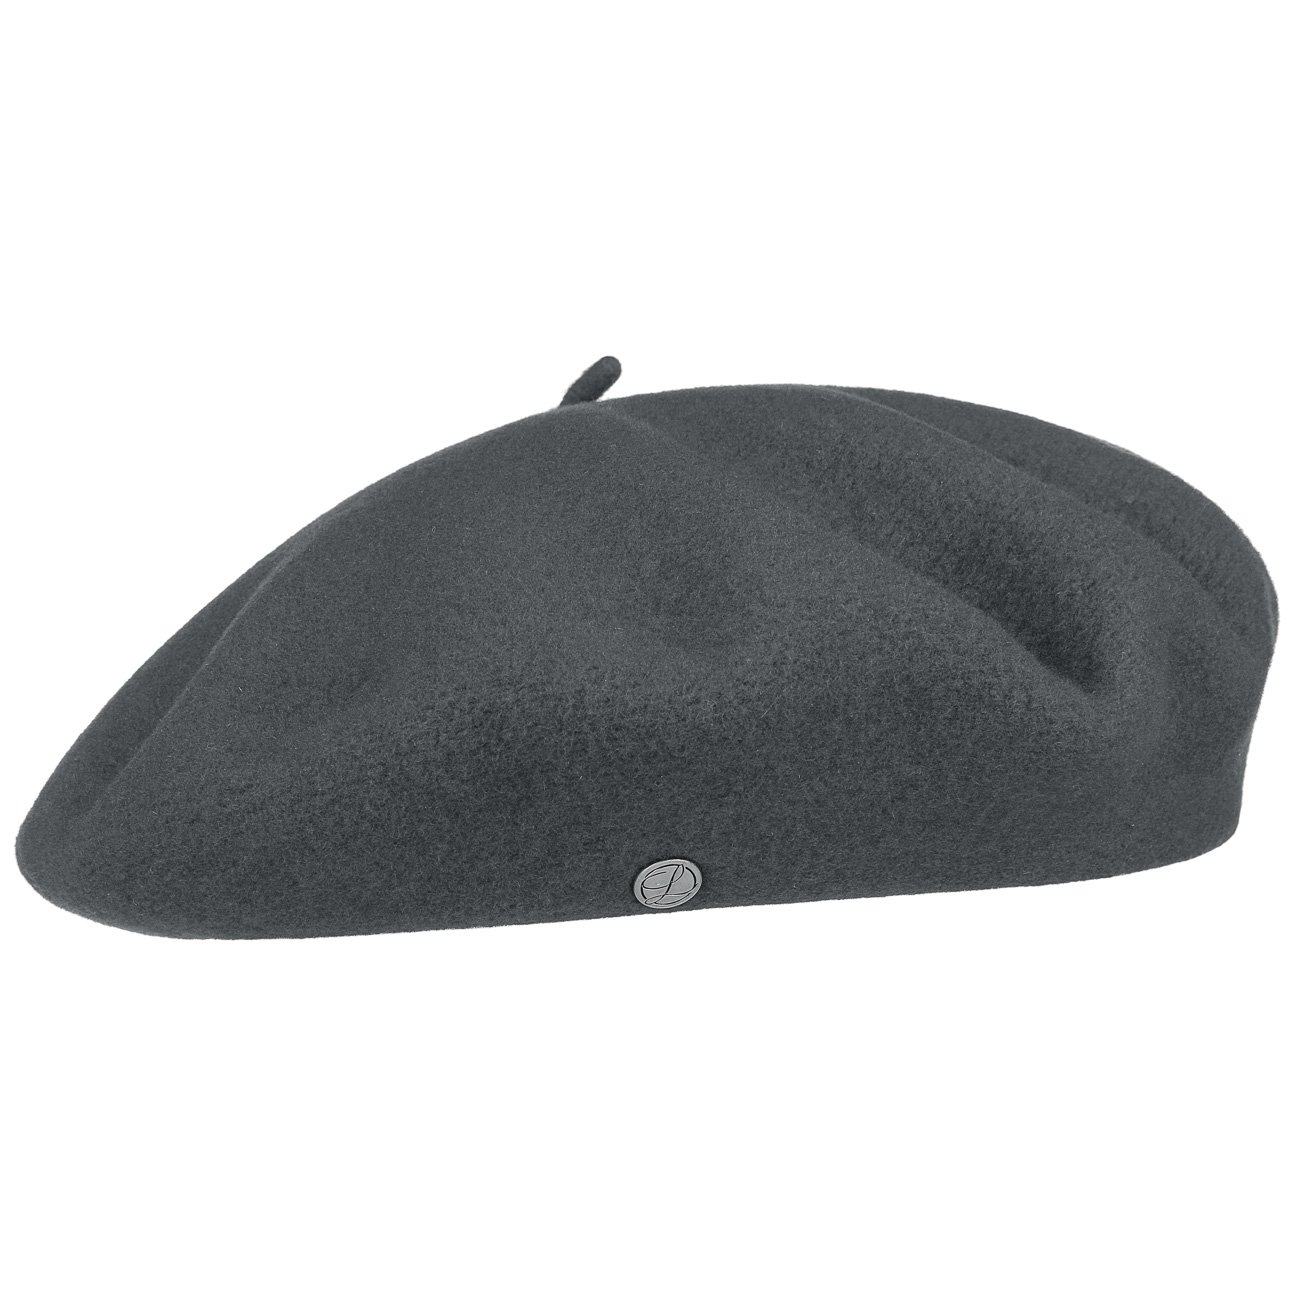 Authentique Classic Wool Beret - Charcoal